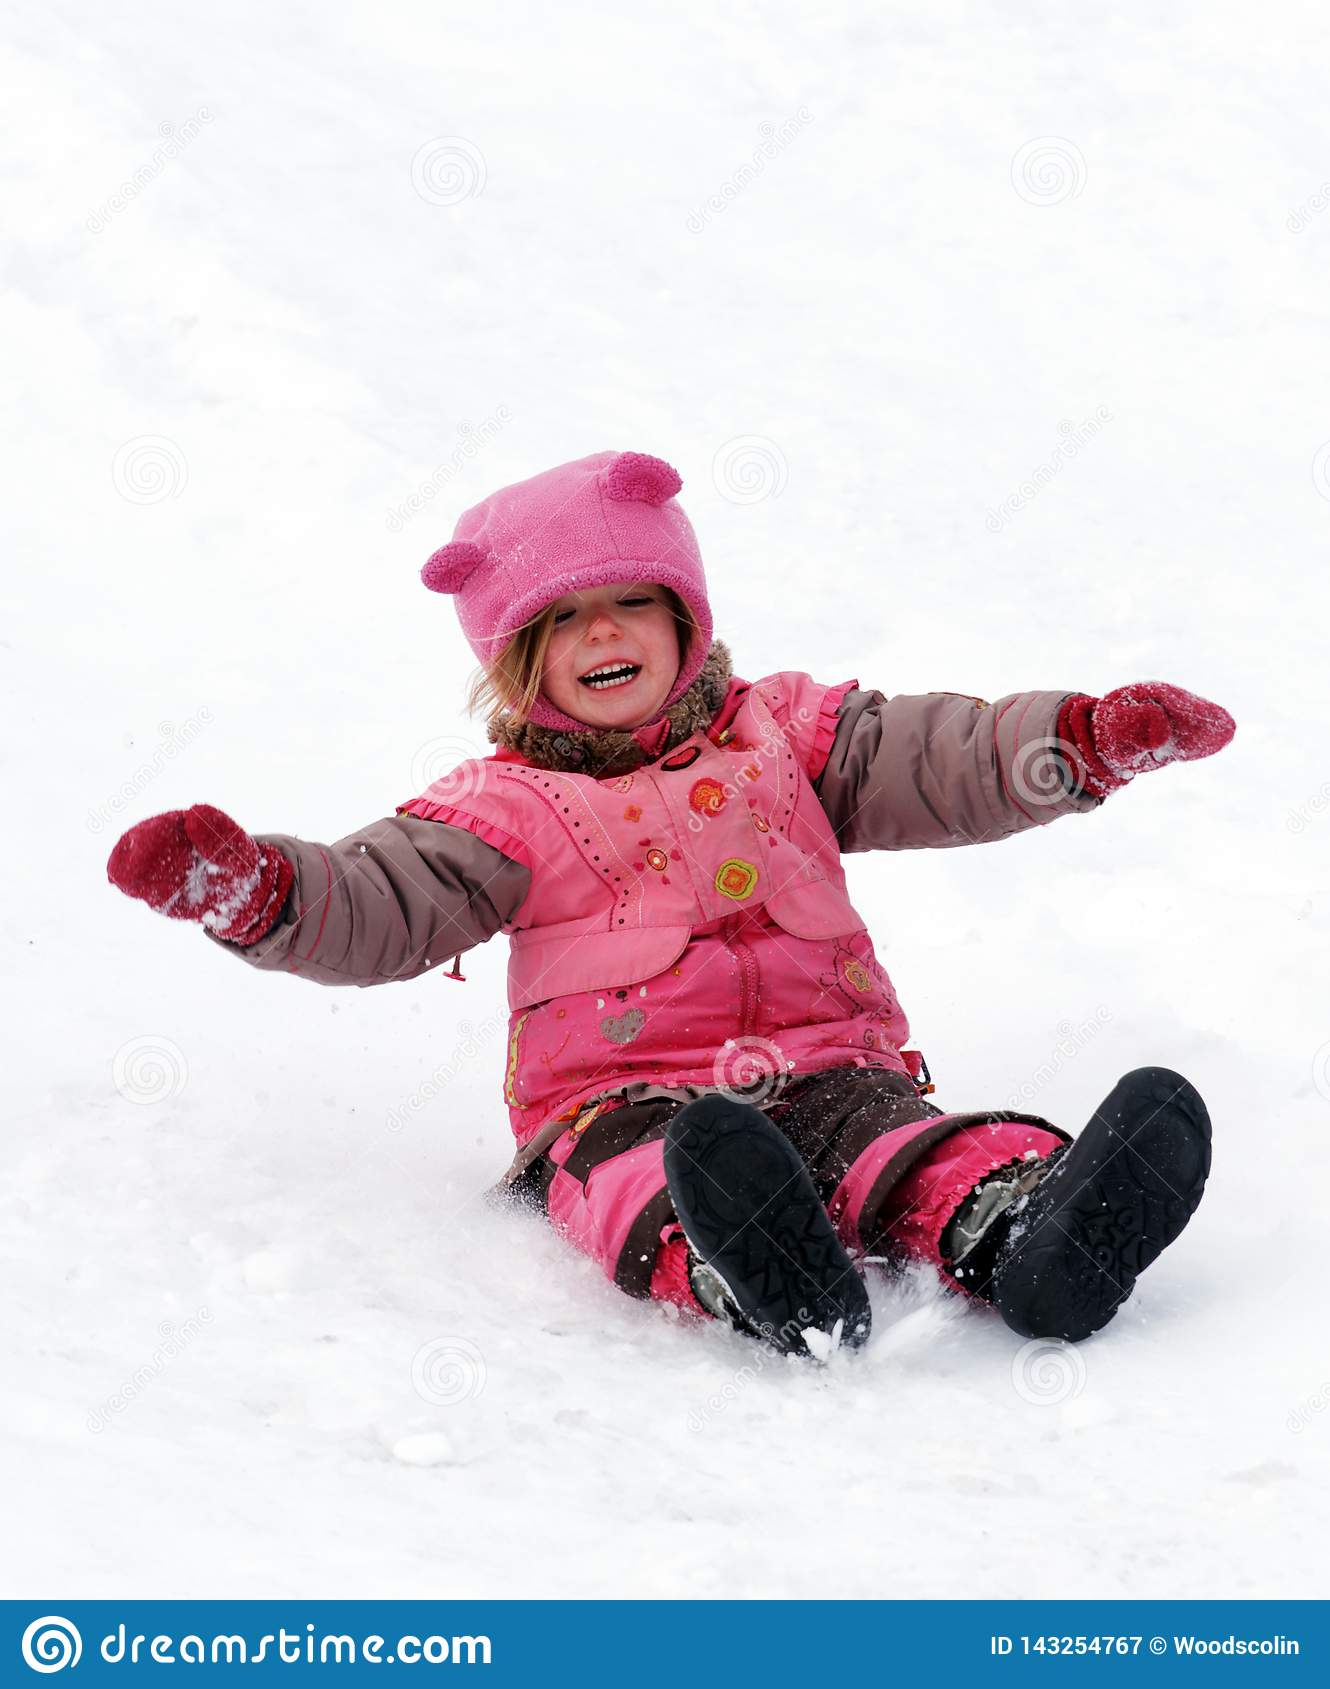 A laughing child sliding in the snow